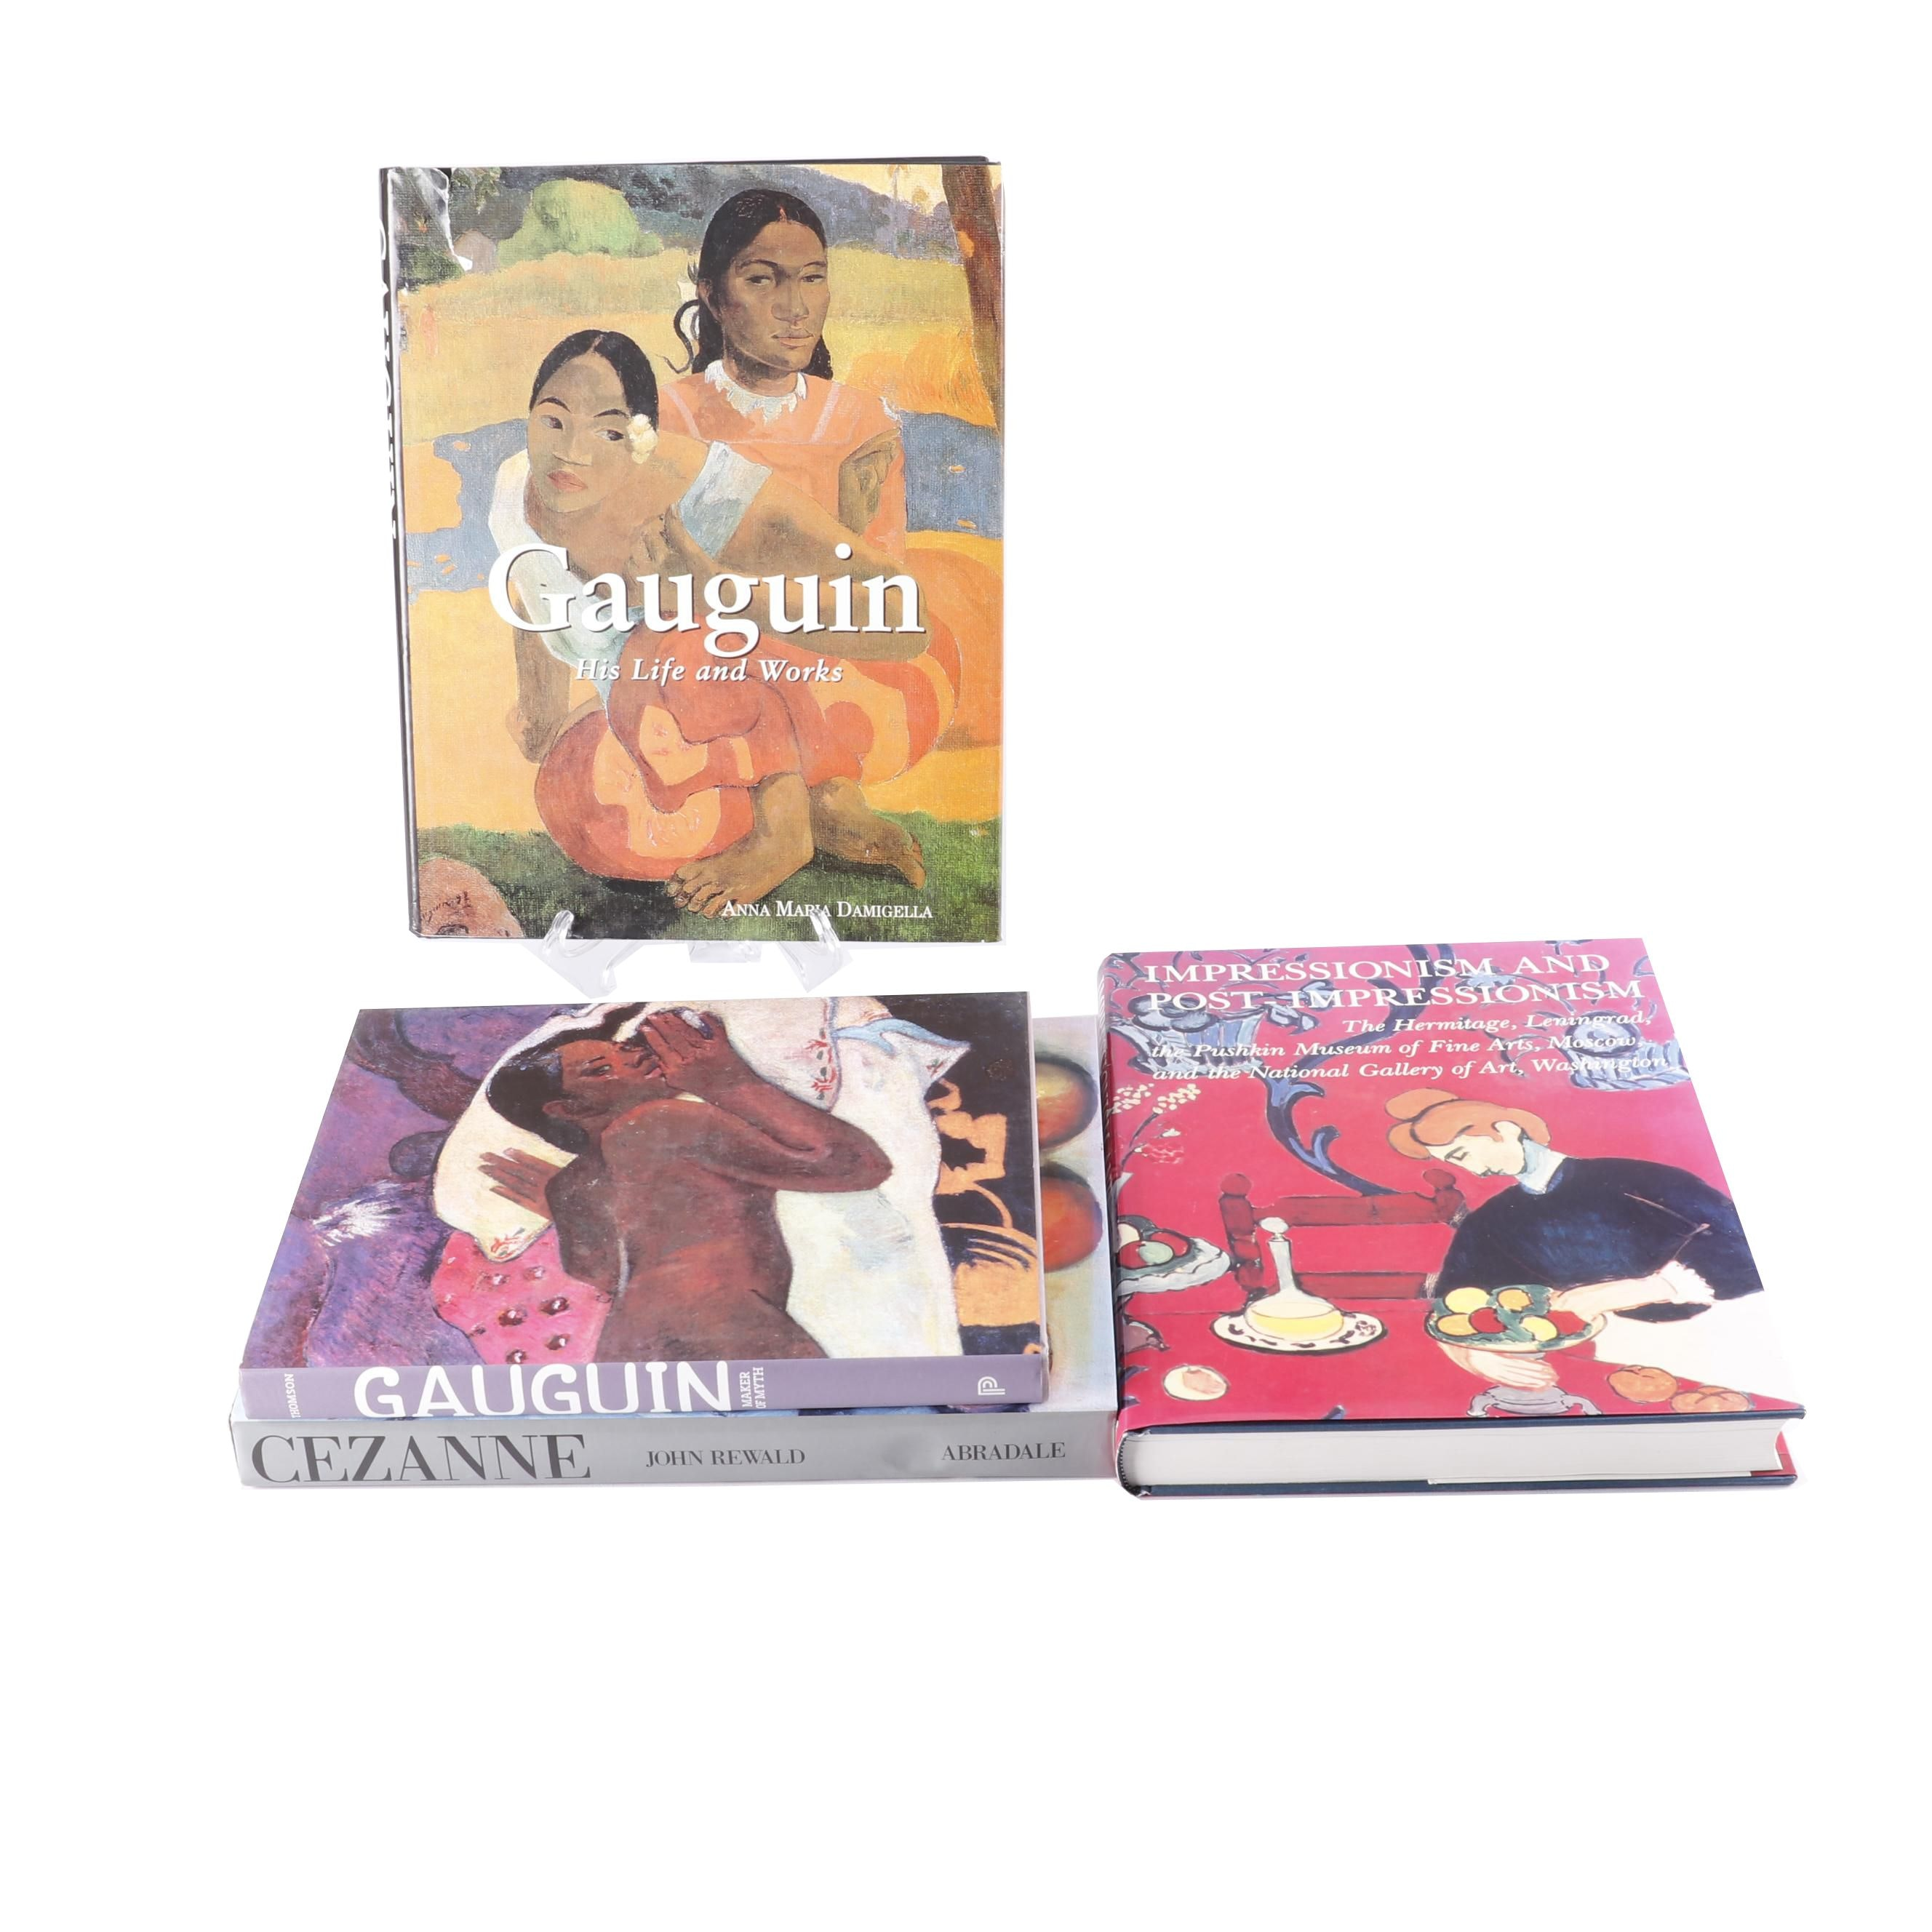 Art Books on Gauguin, Cézanne and Impressionism